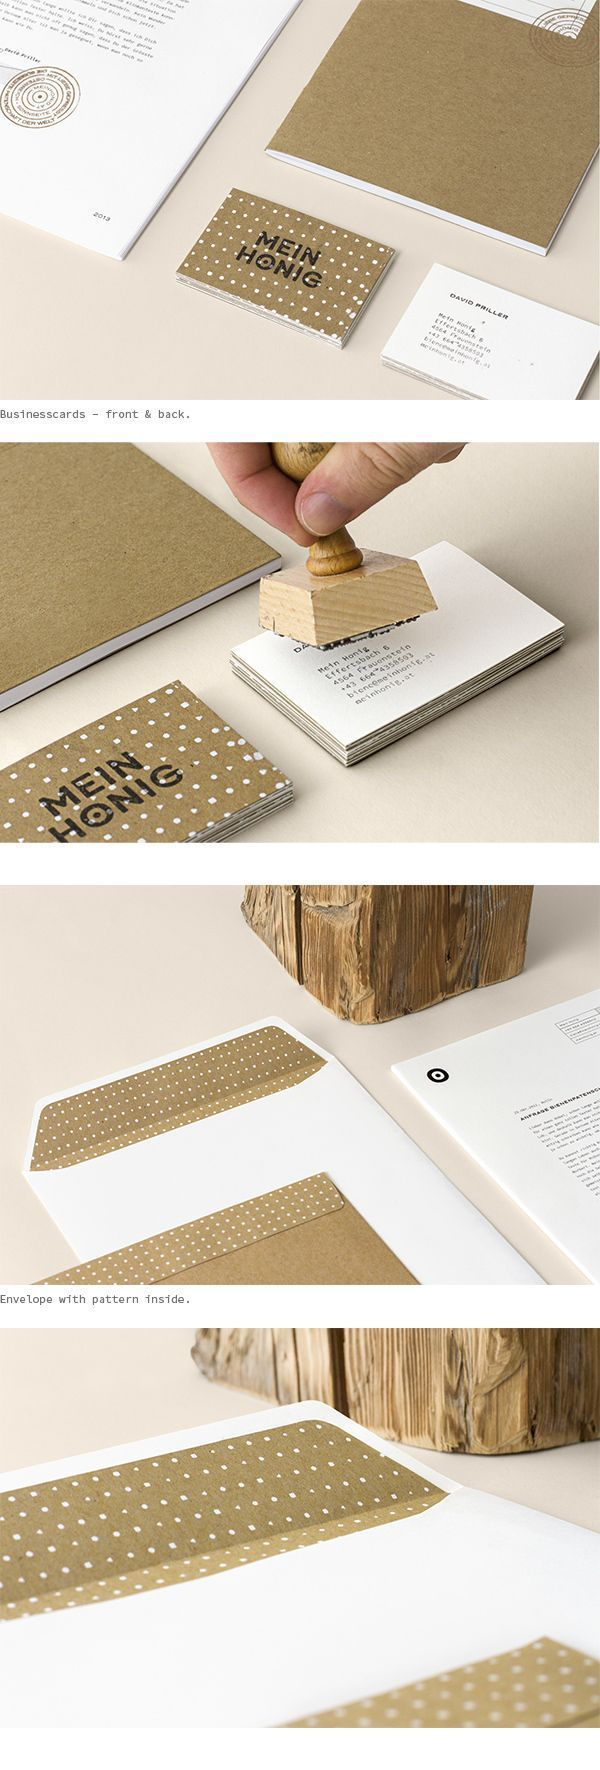 Brown Recycled business cards | design and packaging | Pinterest ...